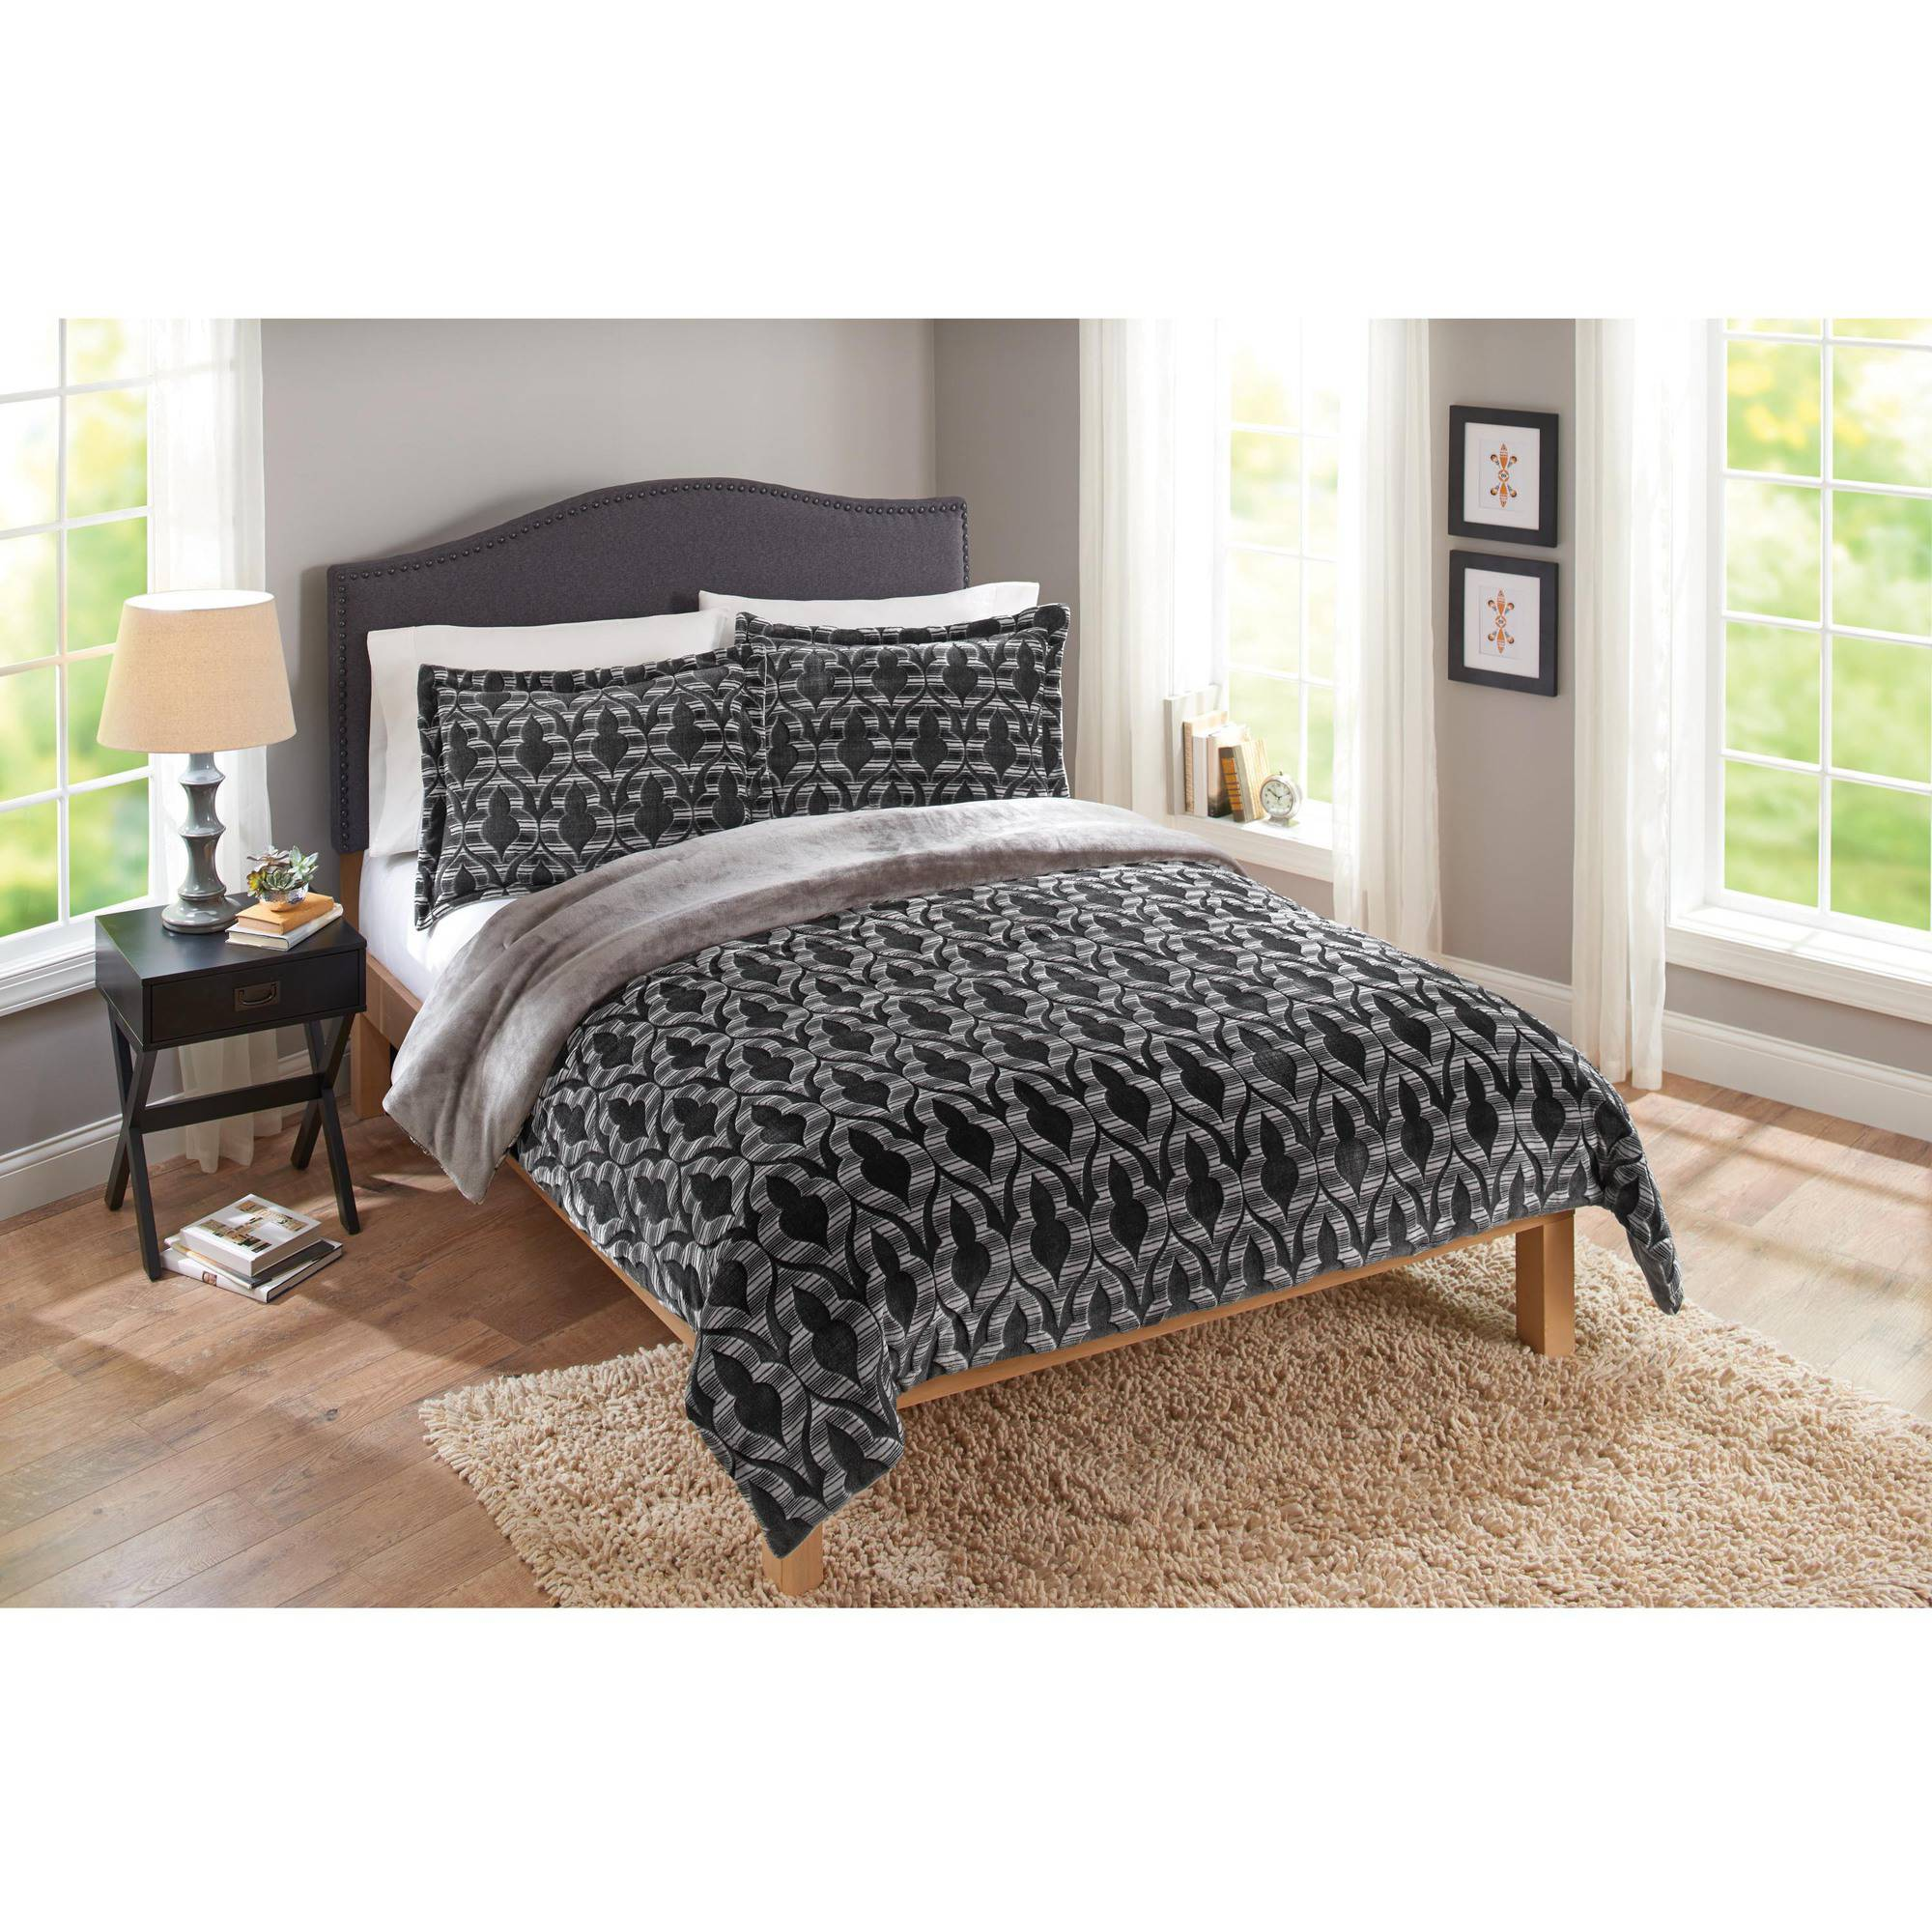 Merekesh Velvet Plush Print Bedding Comforter Mini Set by Sun Yin